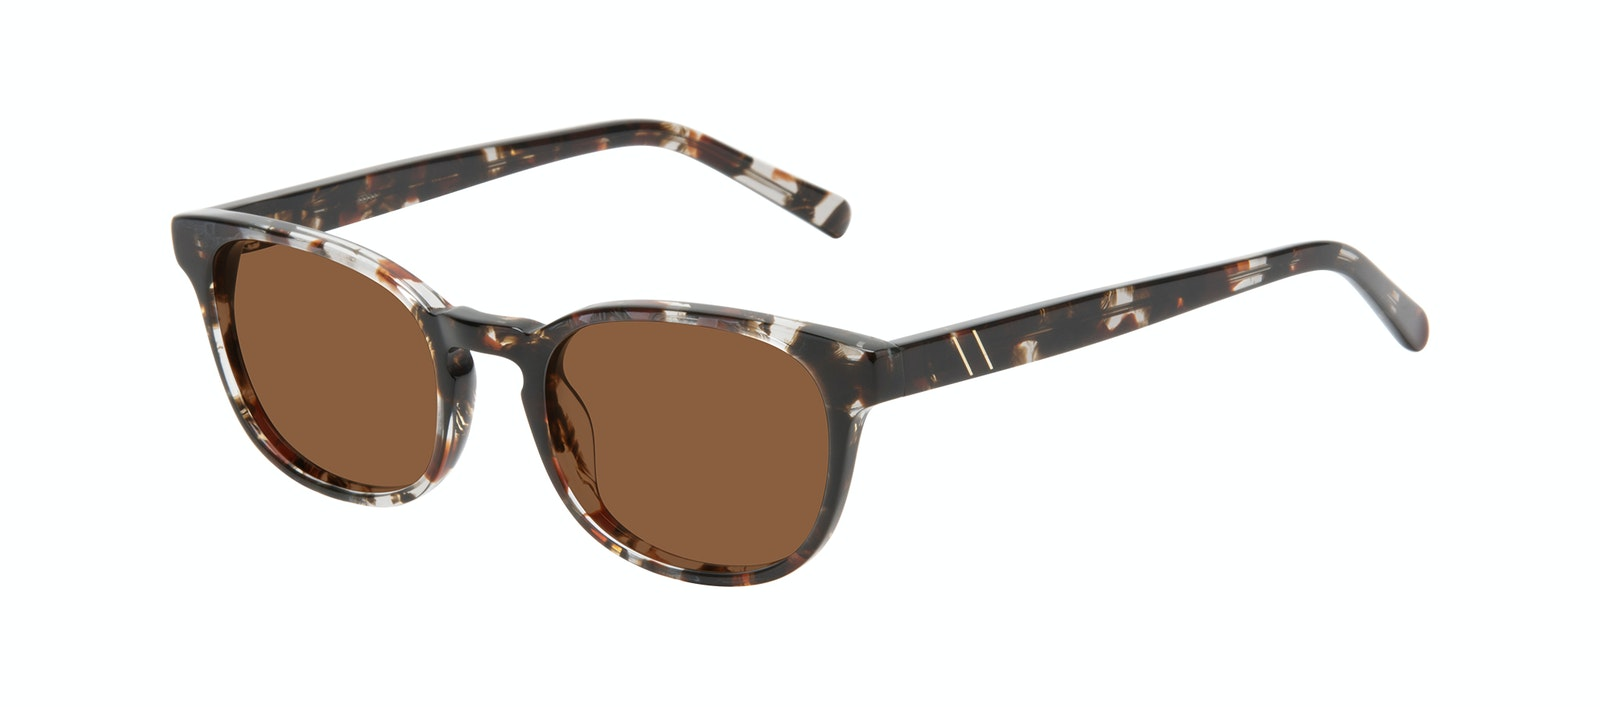 Affordable Fashion Glasses Square Sunglasses Men Essence Mocha Tort Tilt